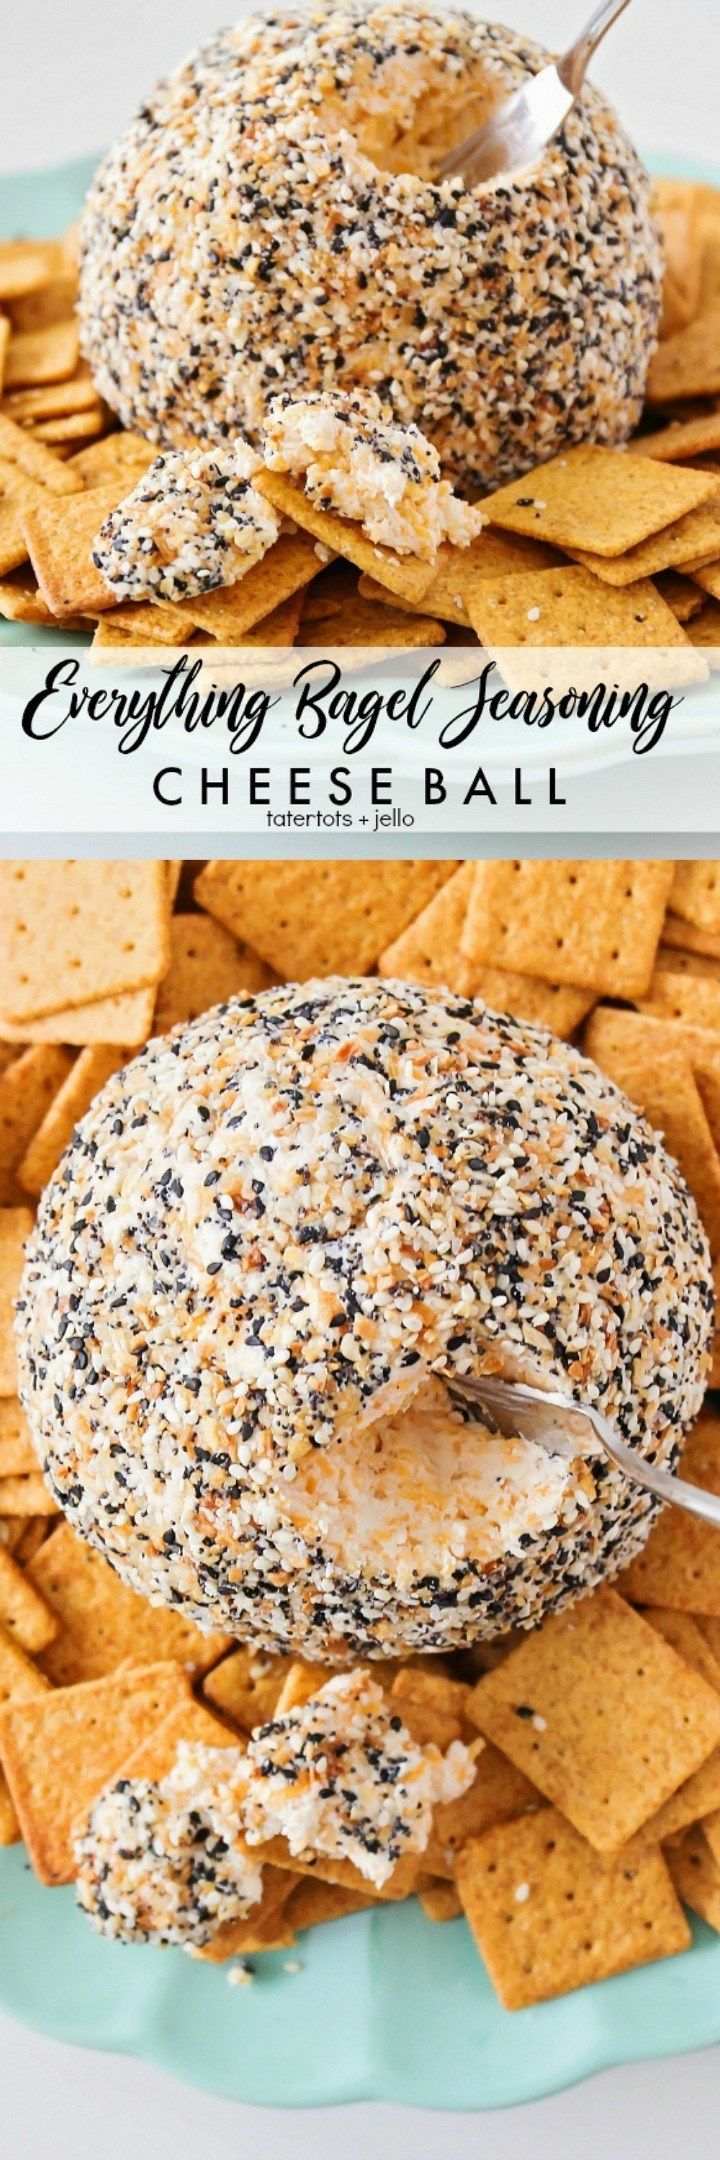 everything bagel seasoning cheese ball – soft cheese inside, crunchy outside. Th…